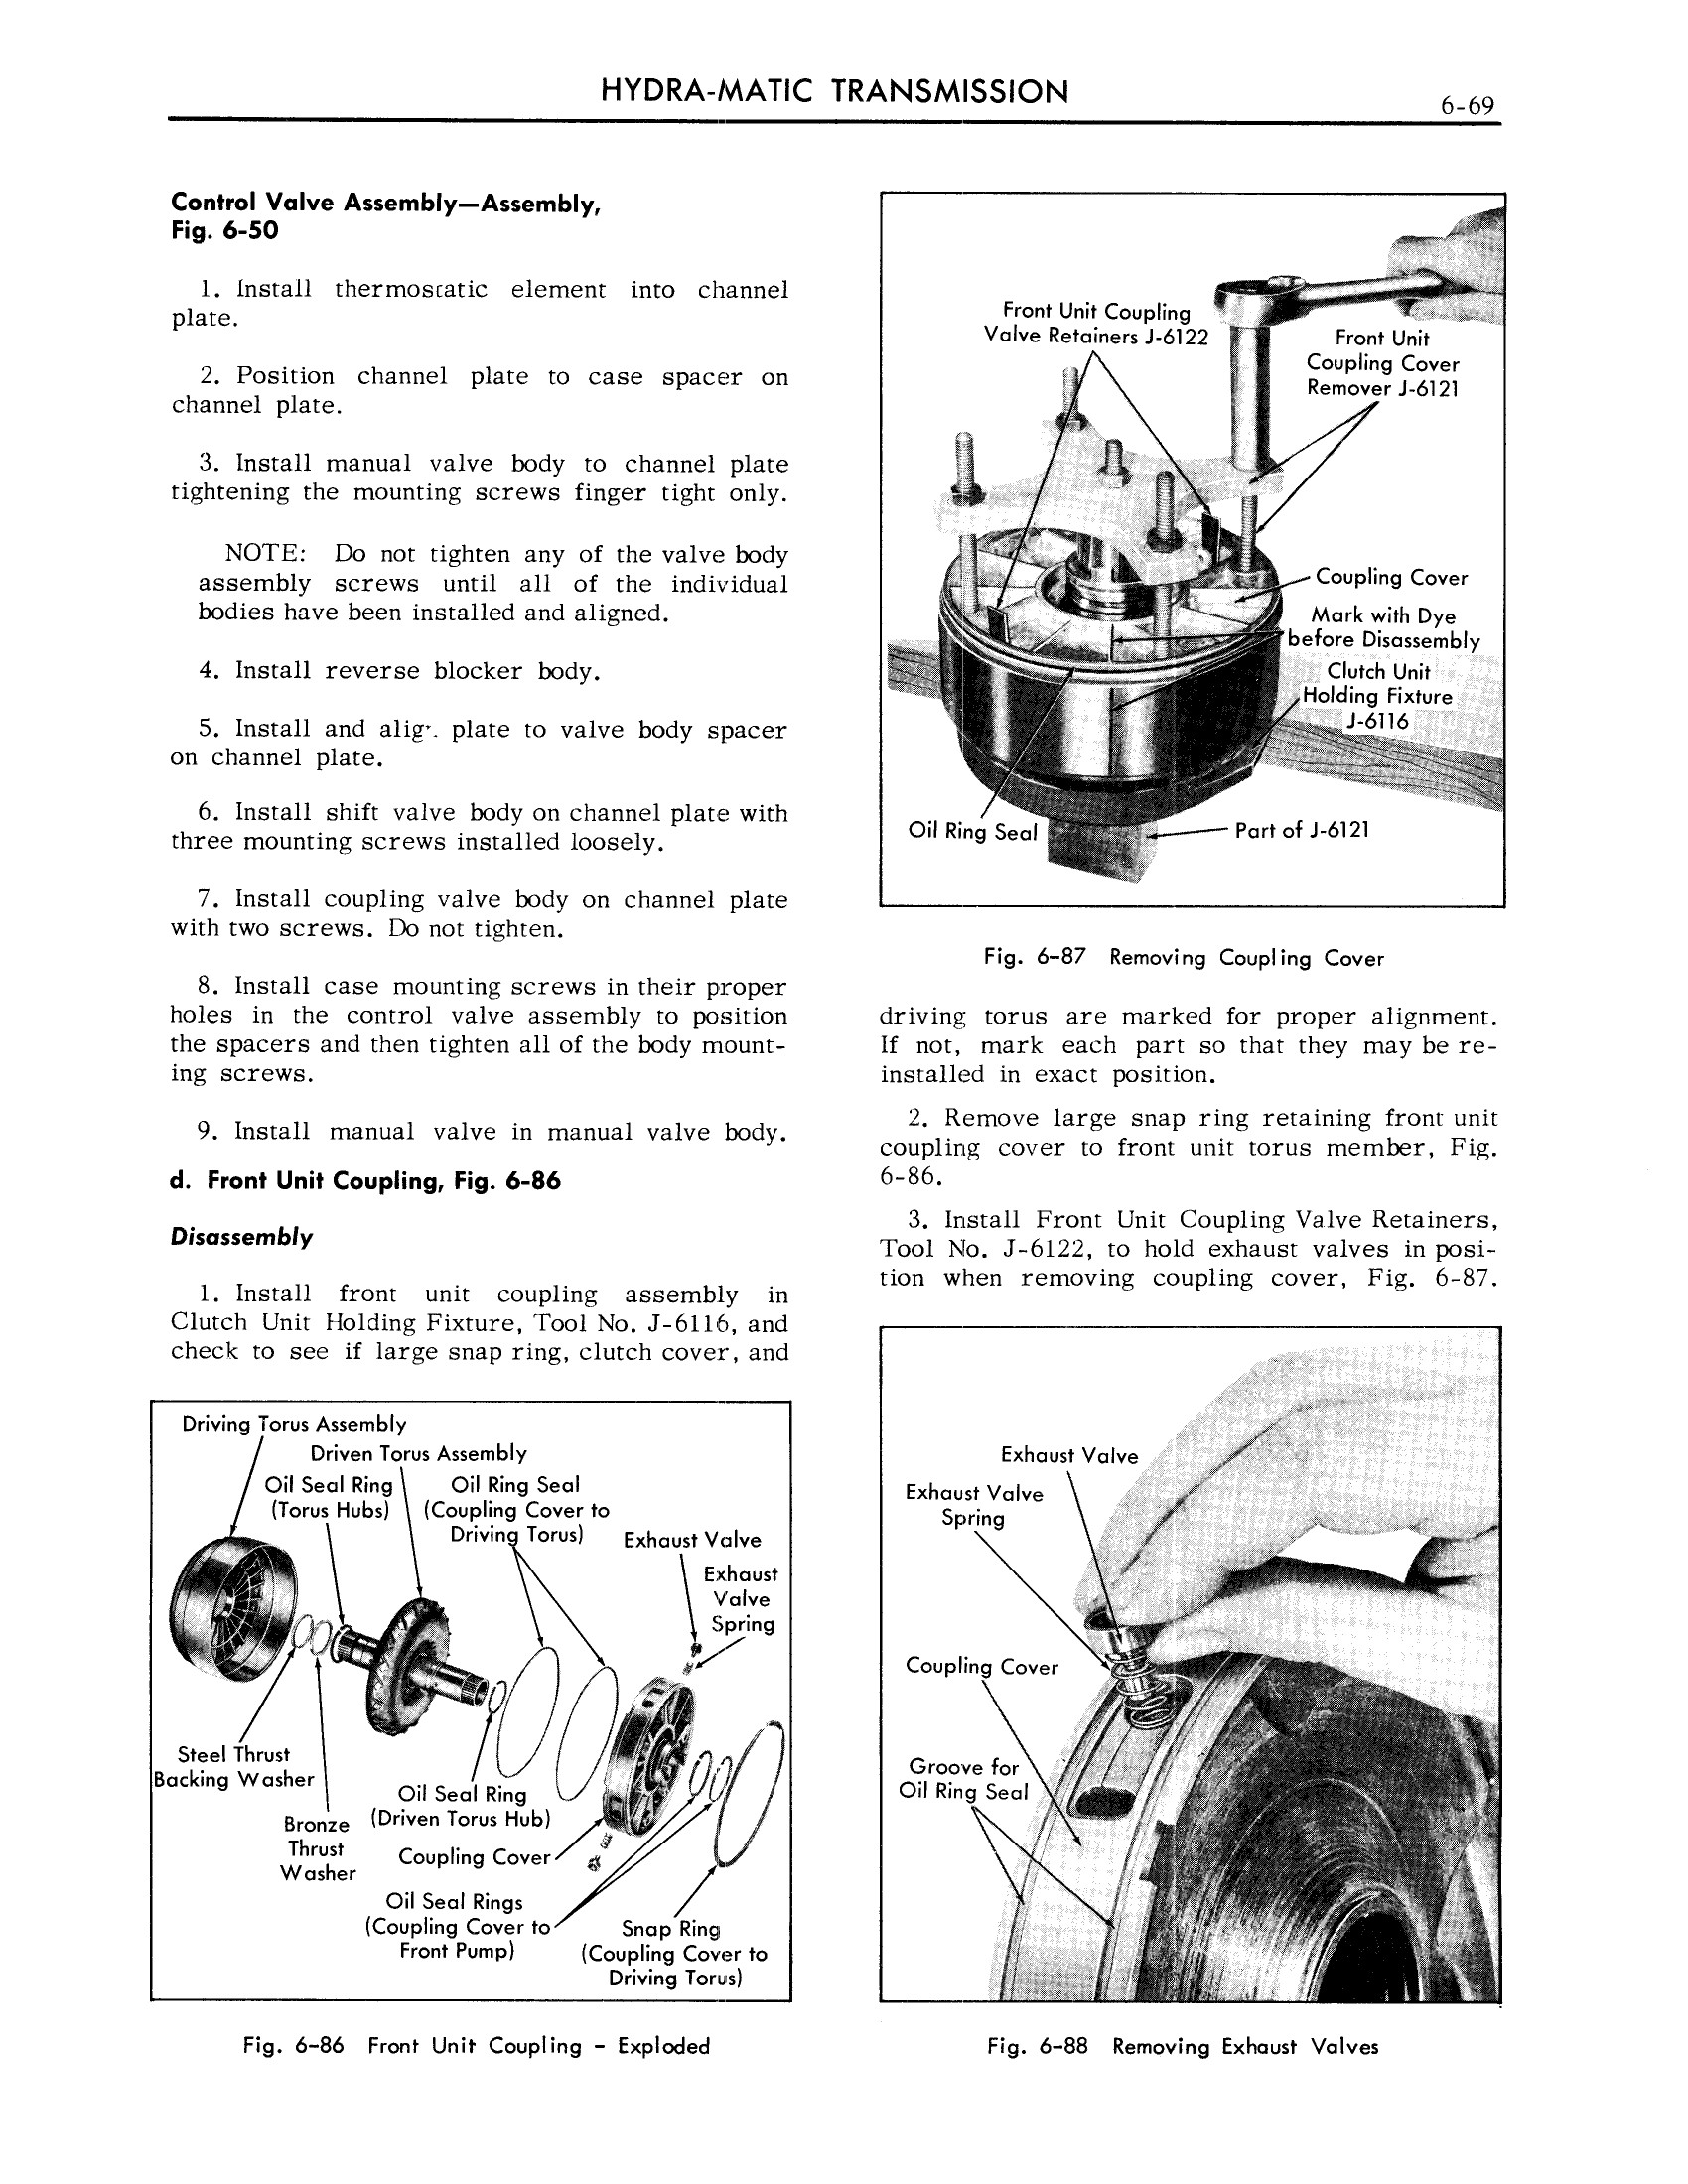 1959 Cadillac Shop Manual- Hydra-Matic Page 69 of 89